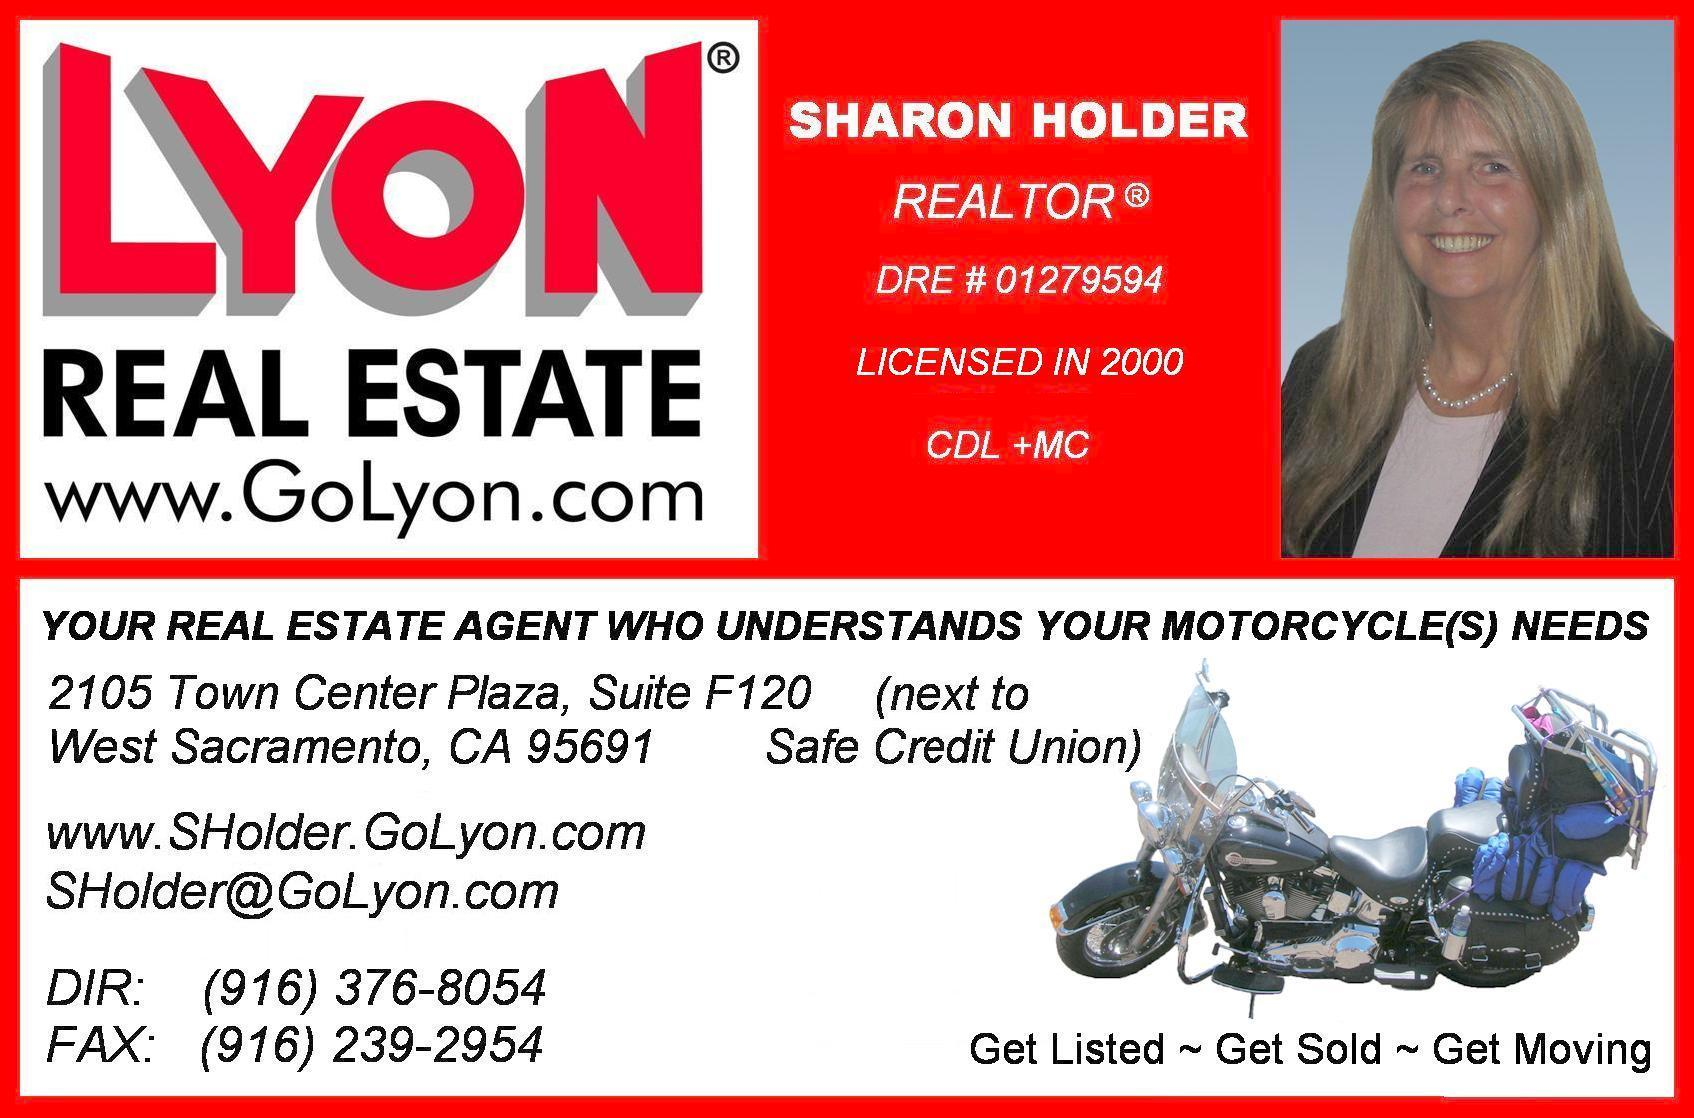 Sharon Holder - Lyon Real Estate - greater Sacramento area